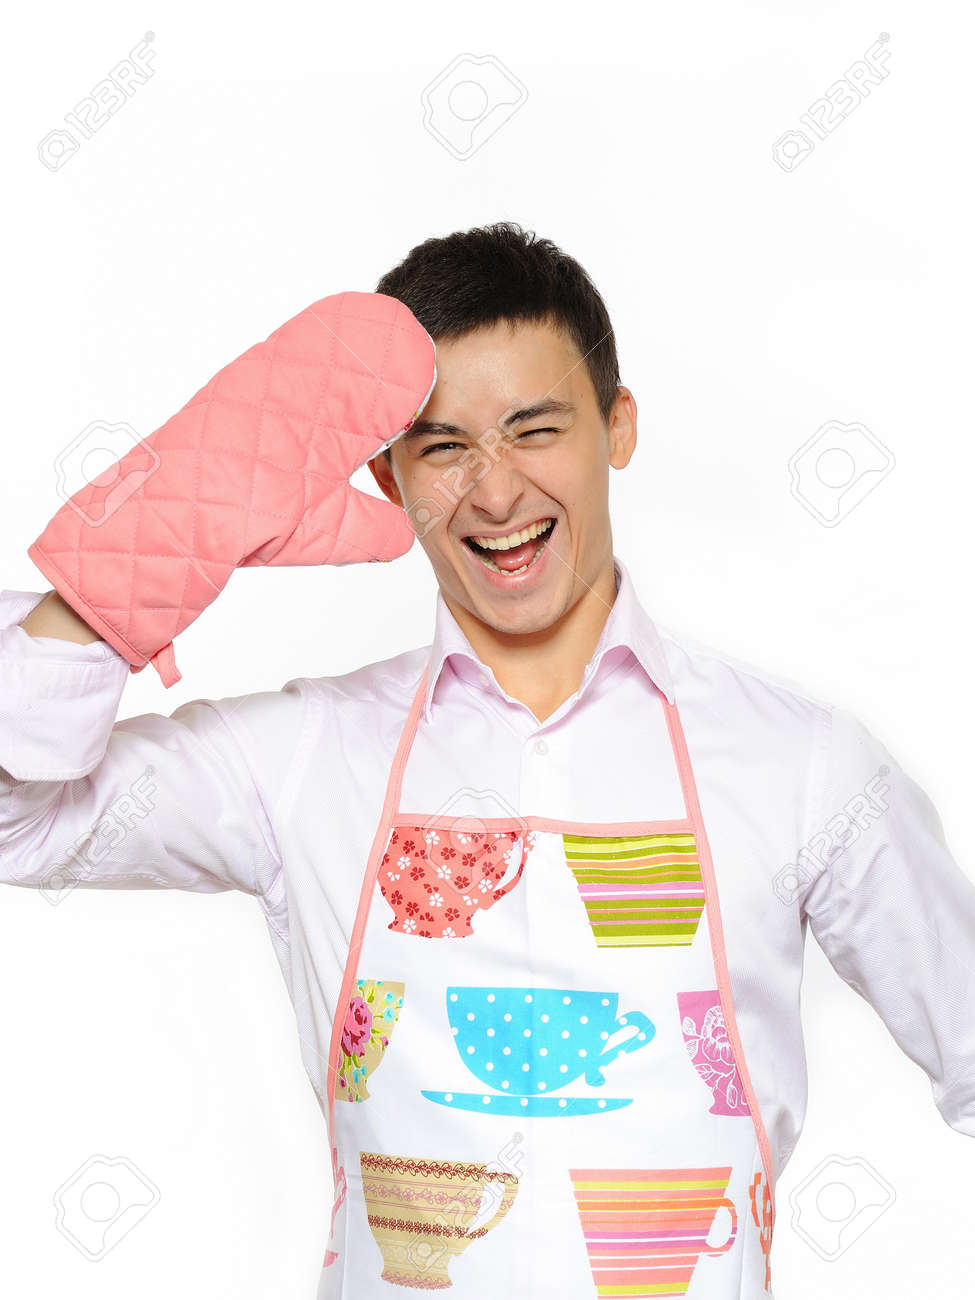 Young happy cook man in apron smiling and leathing. isolated on white background Stock Photo - 7997580